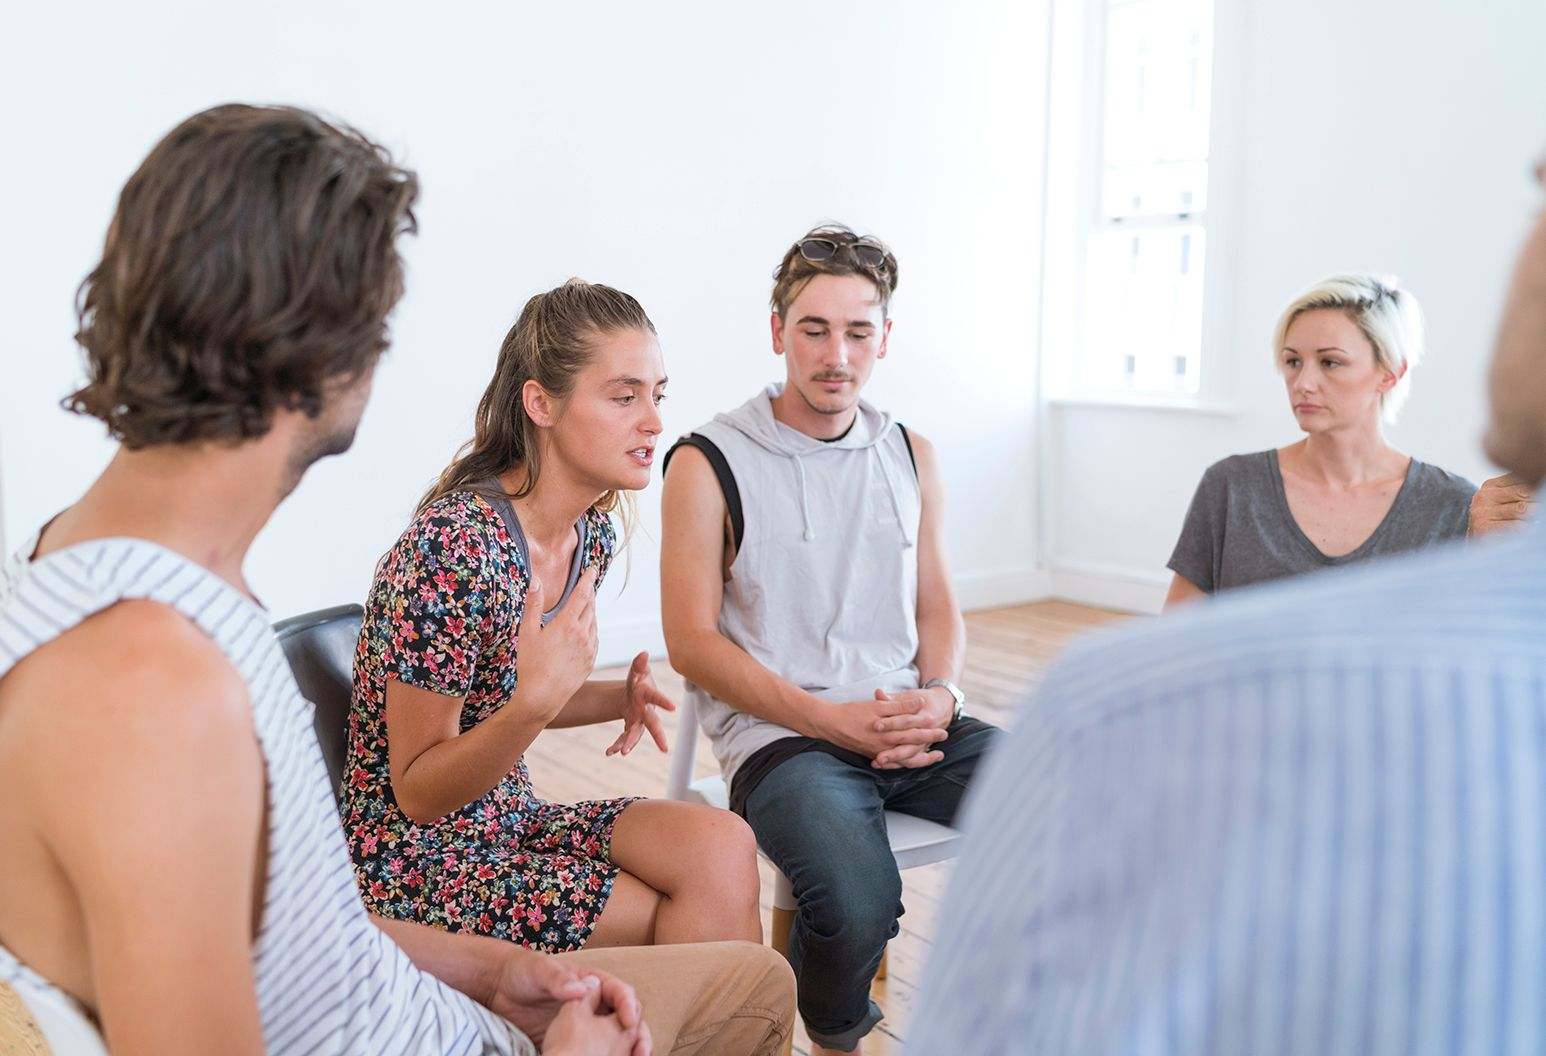 Woman talking in group therapy session. People are in group counseling session with a therapist. Males and females are sitting in entrance hall.